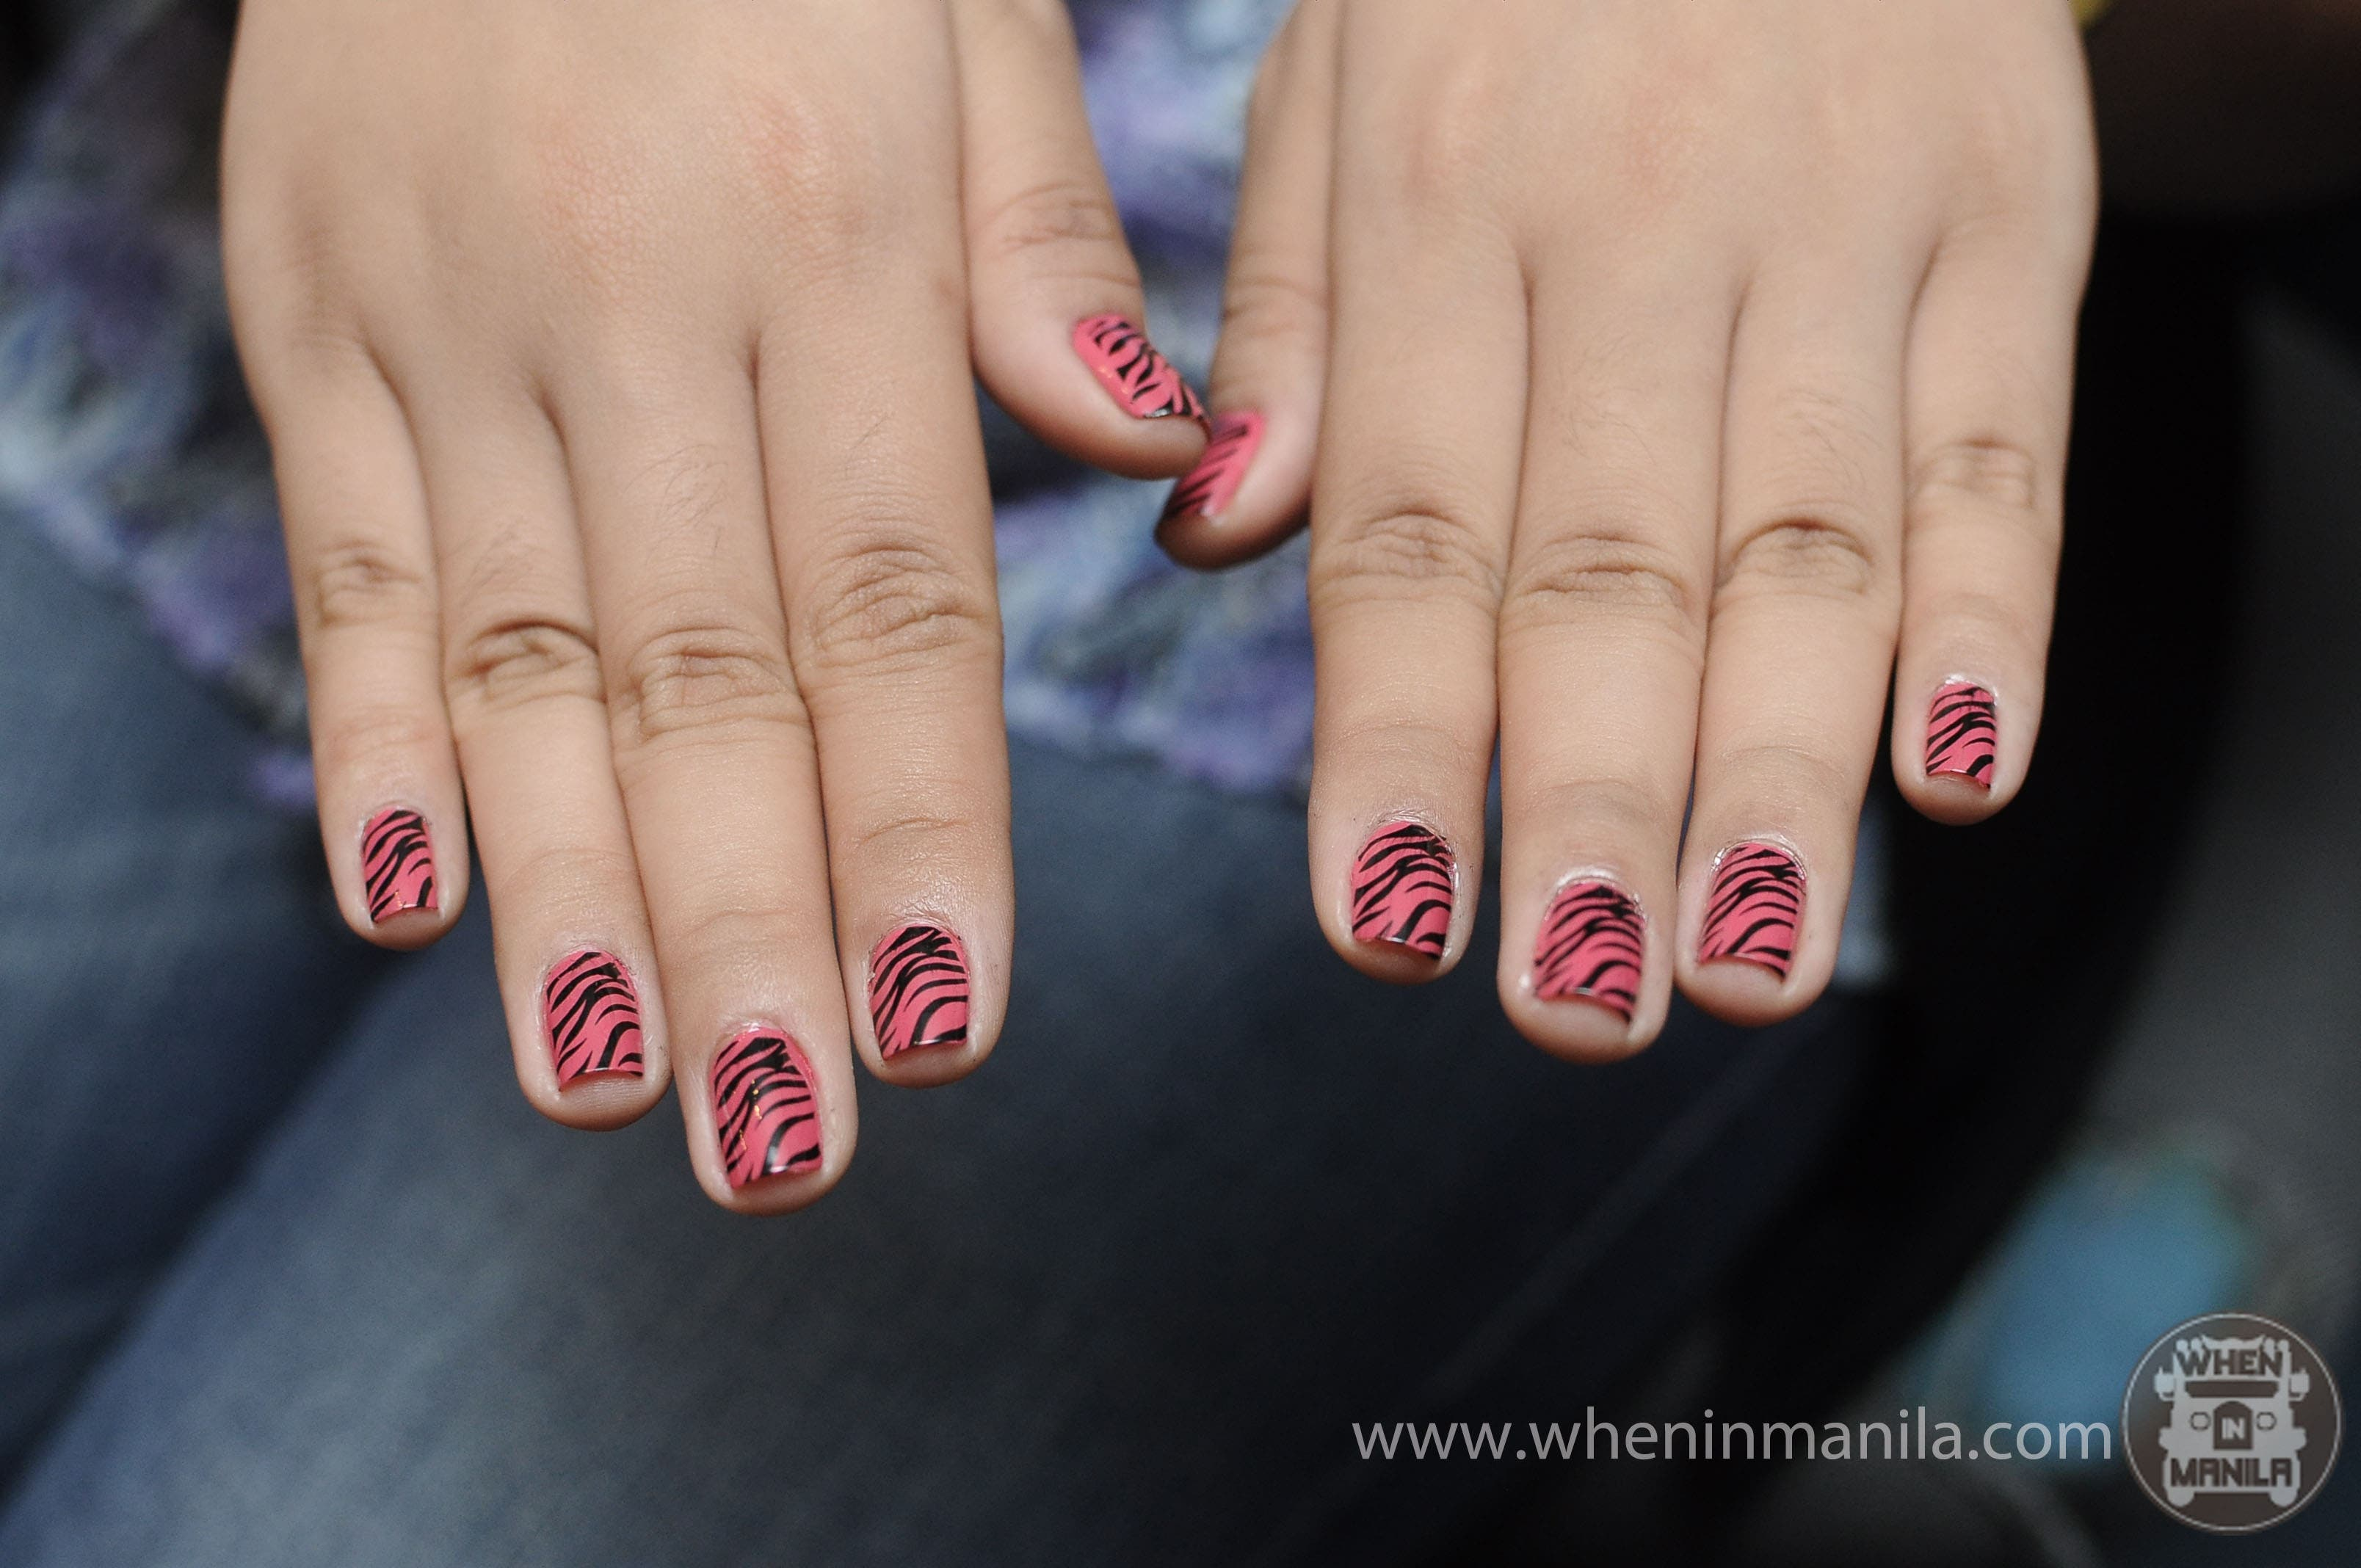 Nail Art Home Service by I Do Nails   When In Manila